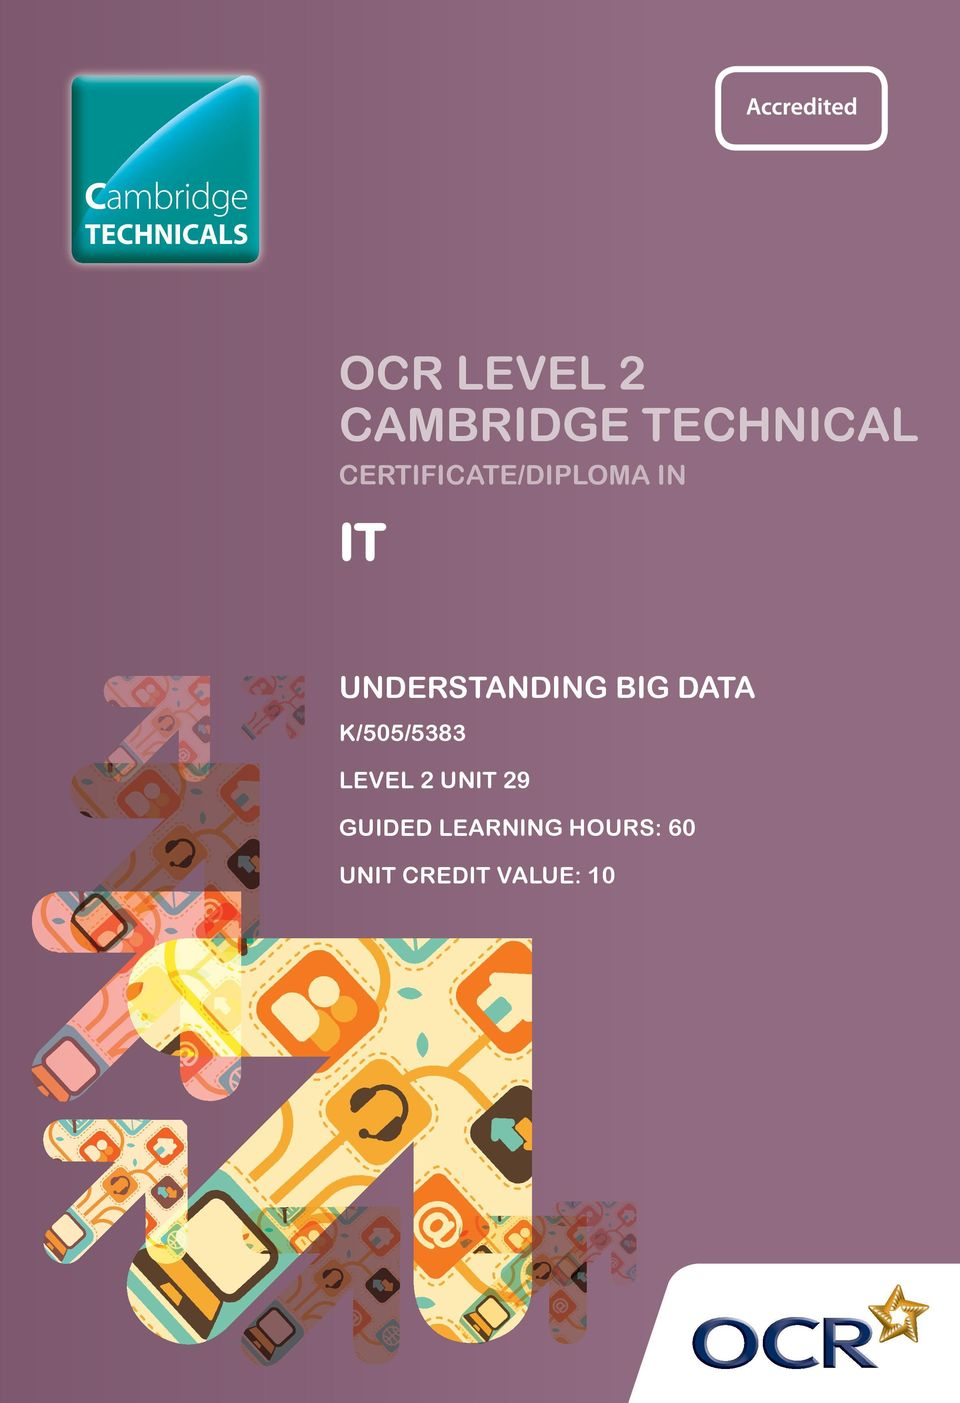 UNDERSTANDING BIG DATA K/505/5383 LEVEL 2